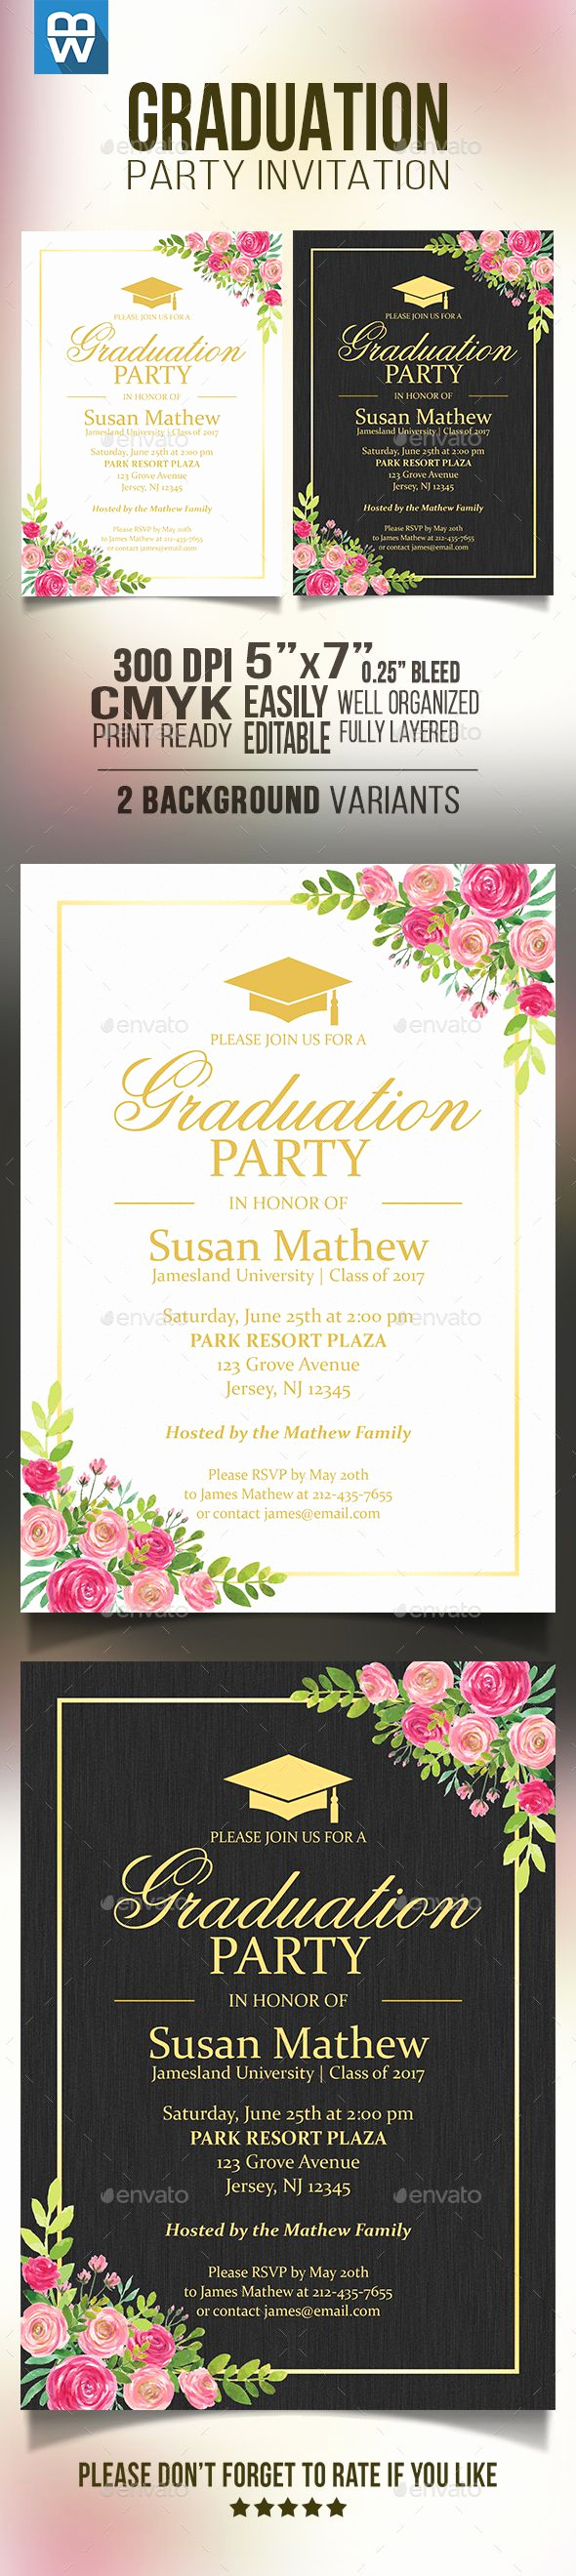 Free Online Graduation Invitation Templates Unique 25 Unique Invitation Templates Ideas On Pinterest